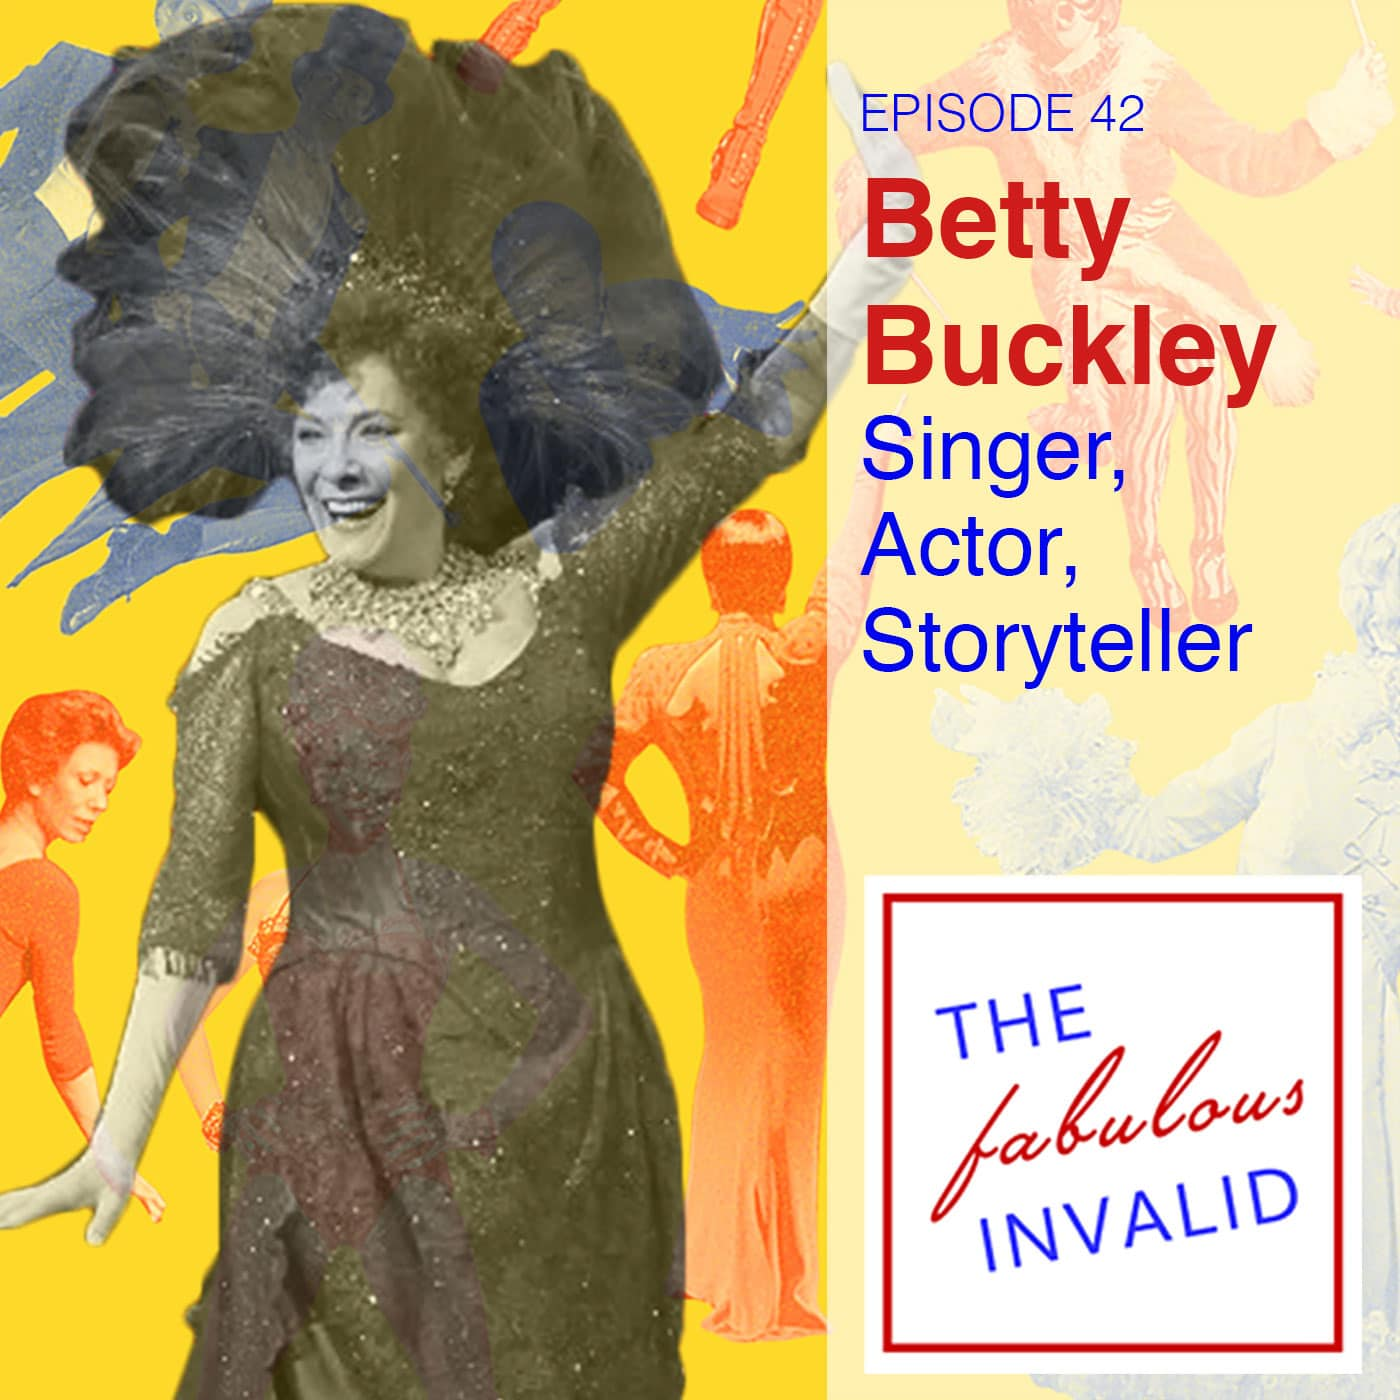 The Fabulous Invalid Ep 42 Betty Buckley